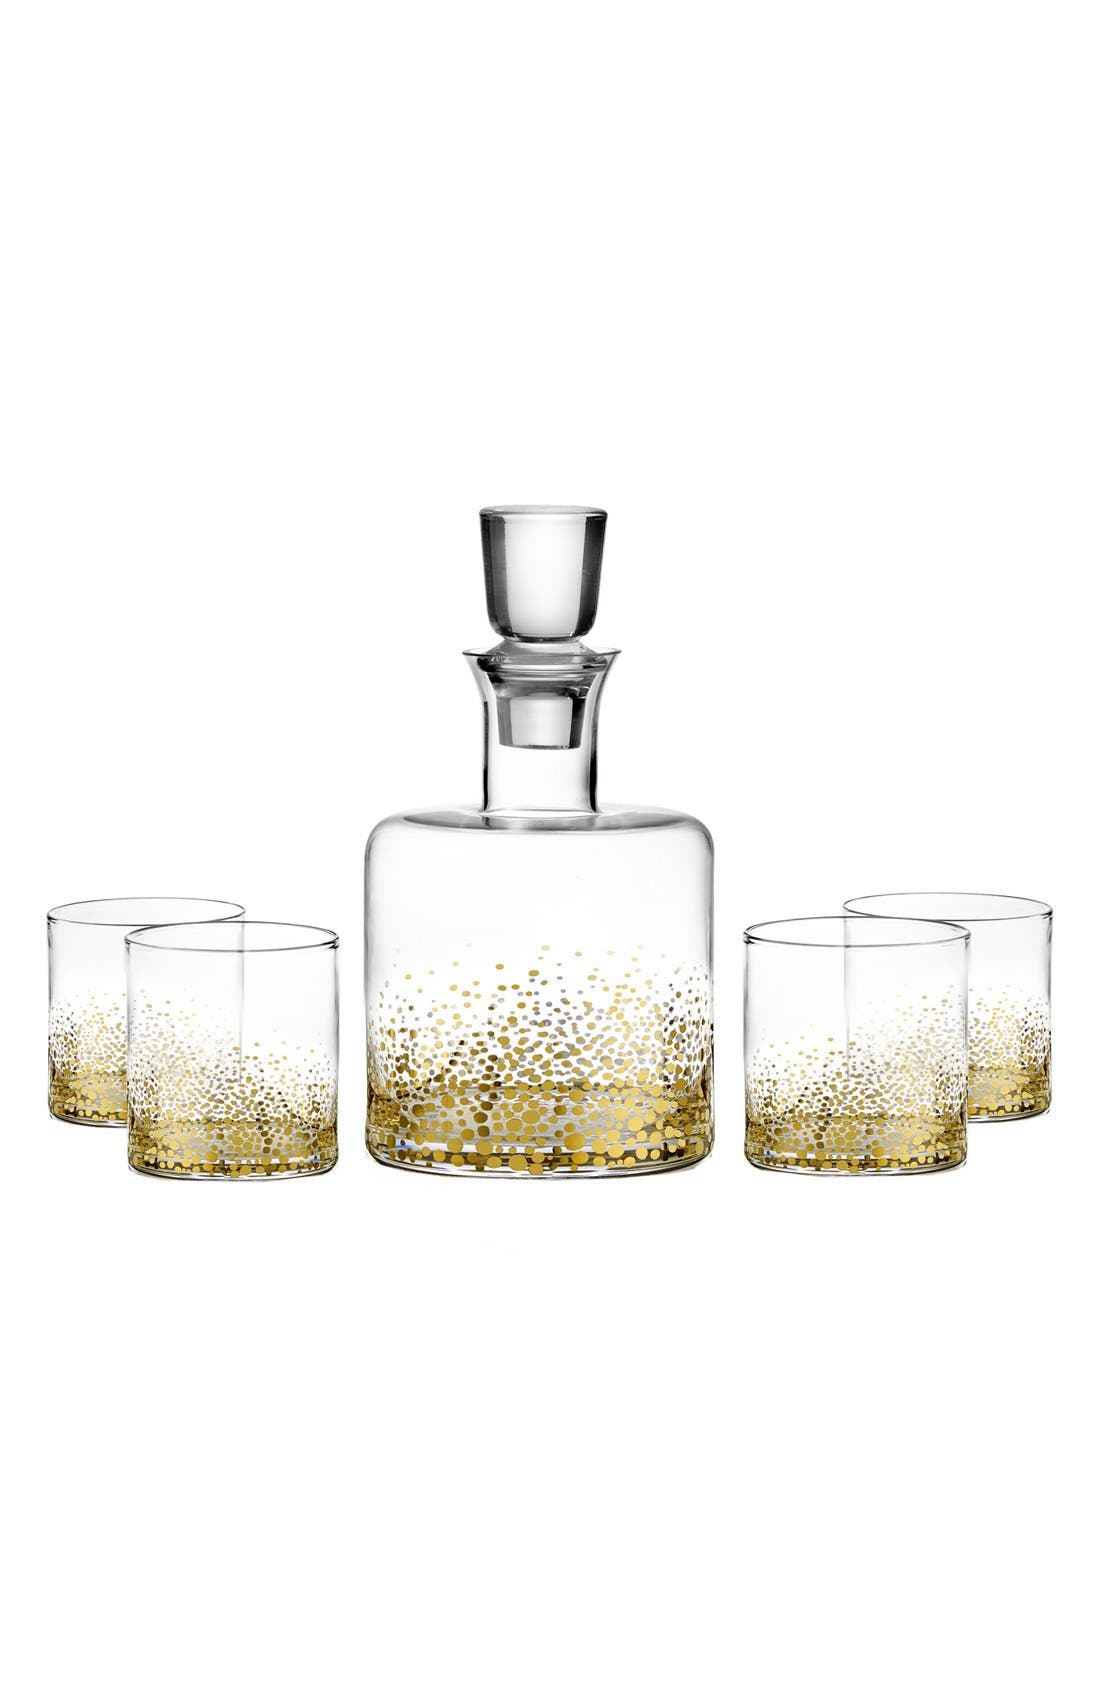 'Daphne' Decanter & Whiskey Glasses,                         Main,                         color, Luster/ Light Gold